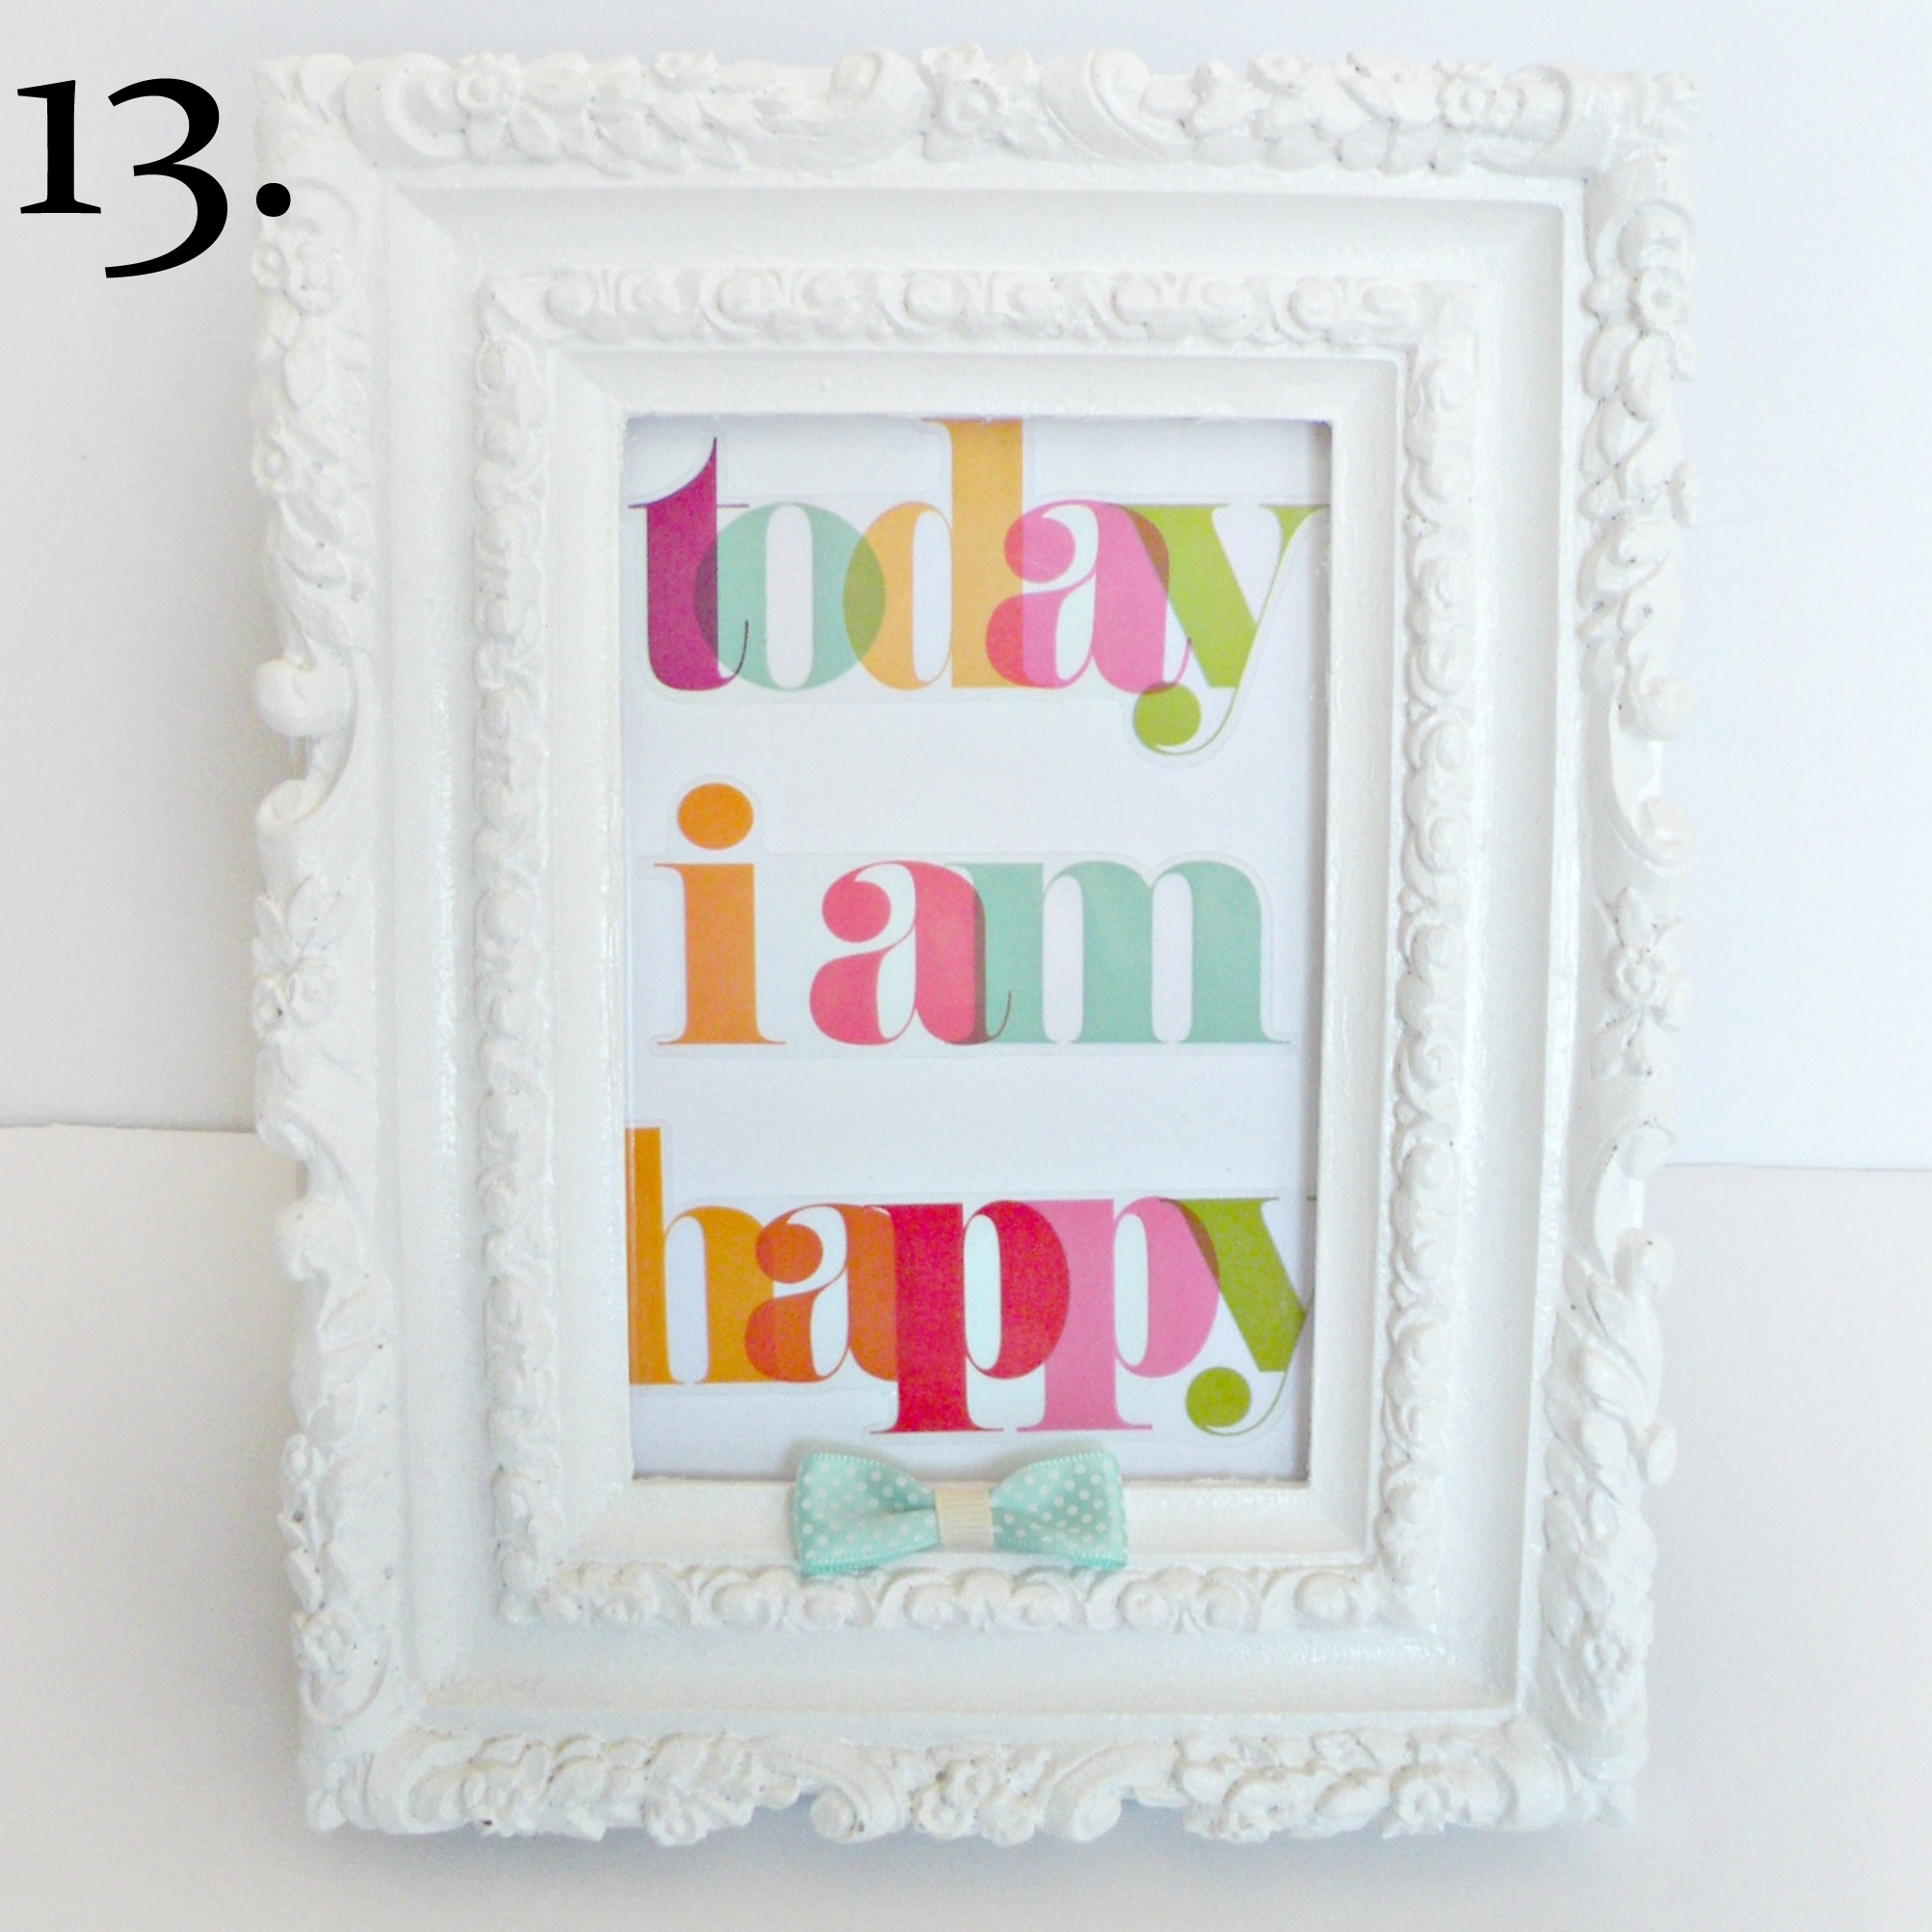 13. Today I am happy mambi sticker framed..jpg